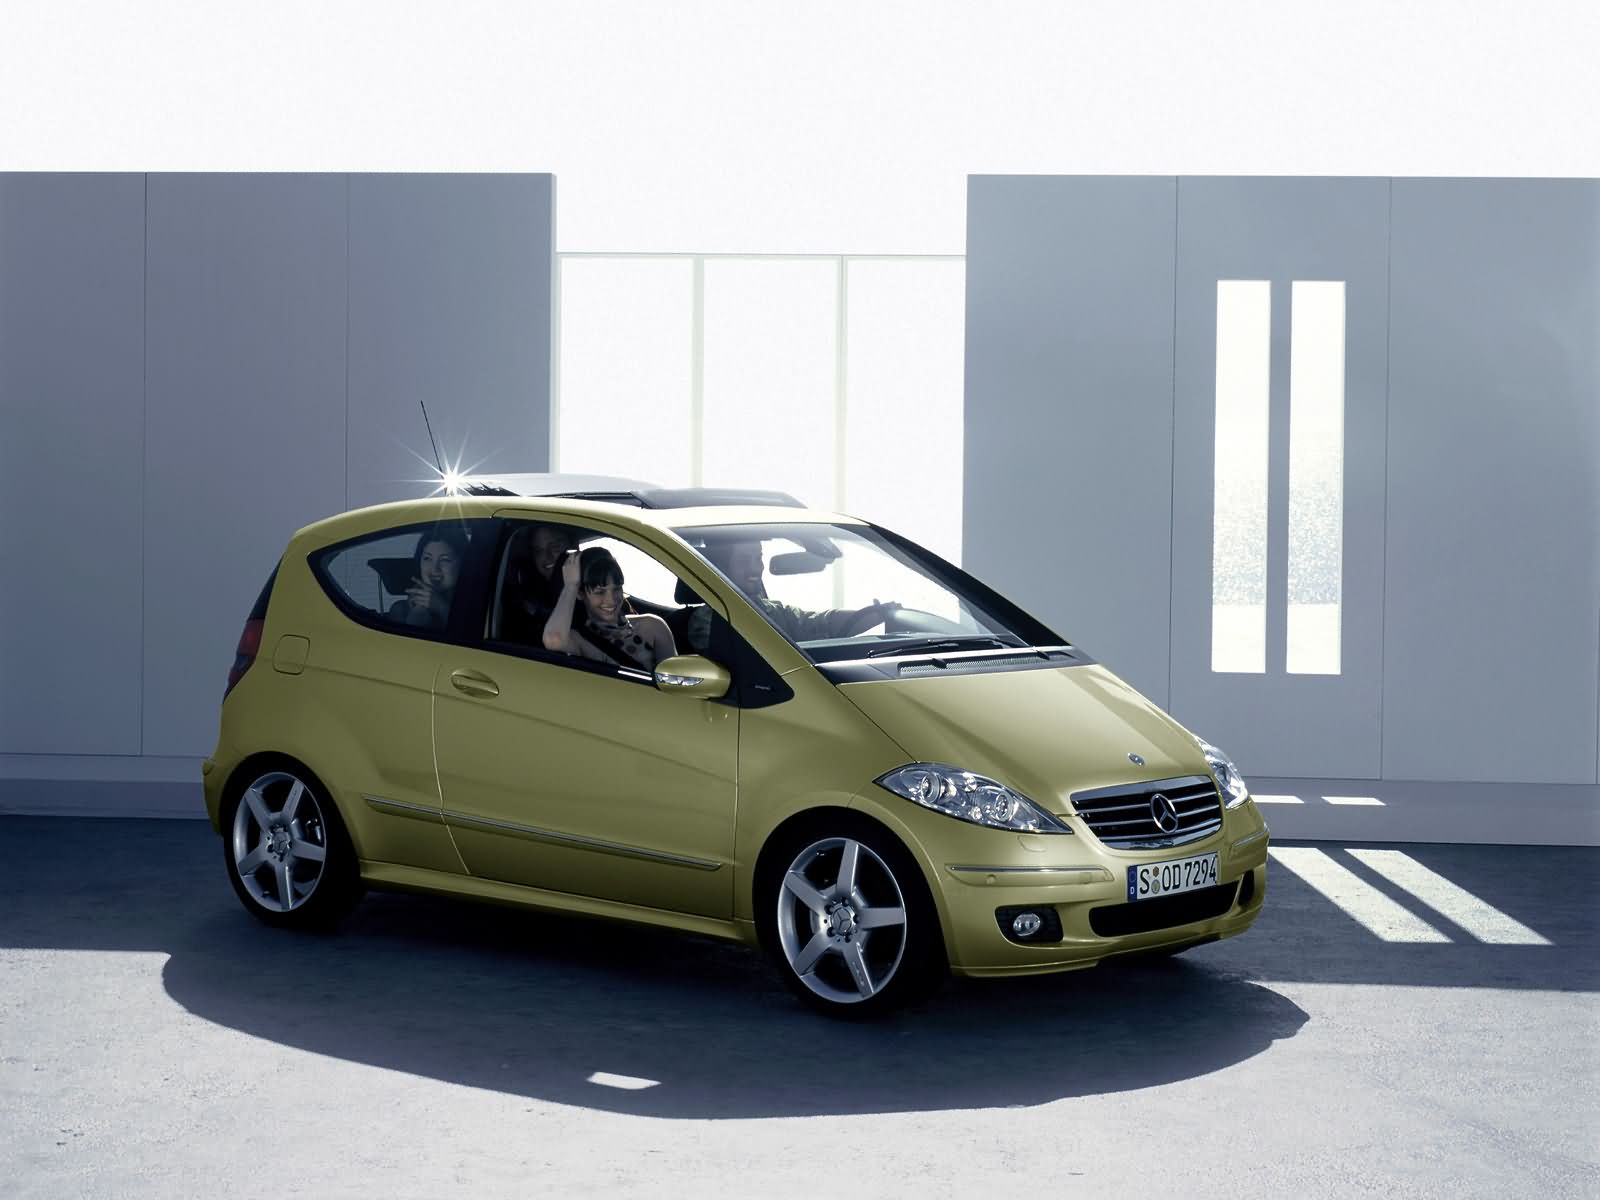 mercedes benz a200 picture 11952 mercedes benz photo gallery. Black Bedroom Furniture Sets. Home Design Ideas